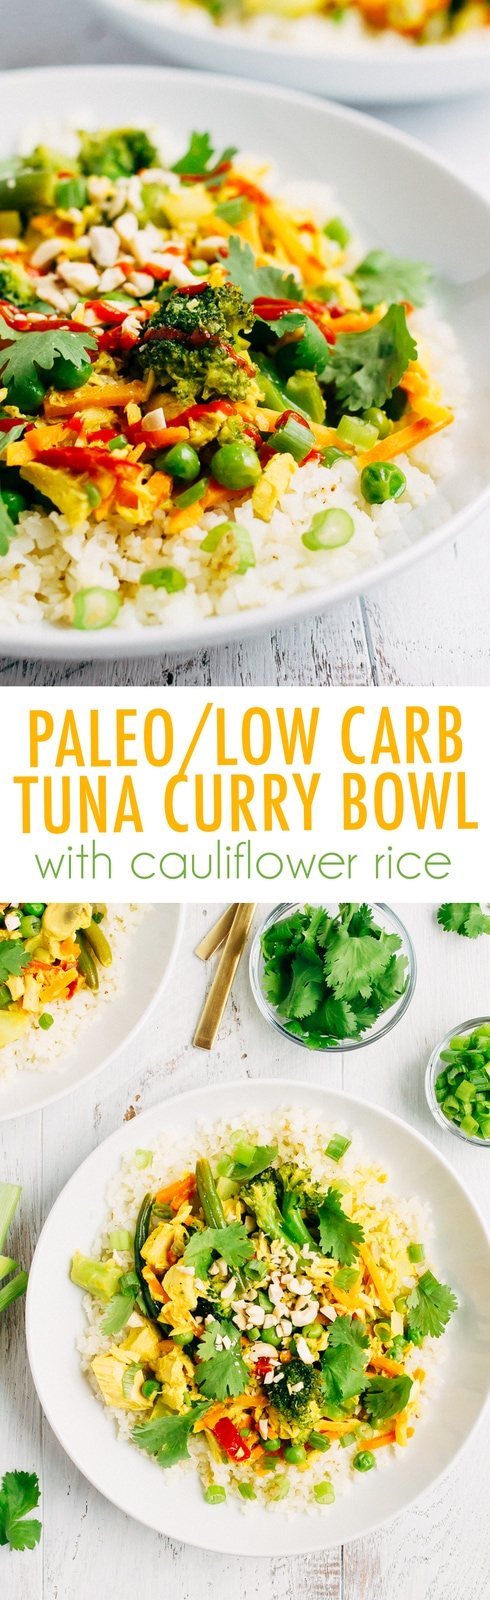 This simple tuna curry bowl is made with pantry/freezer staples and comes together in less than 20 minutes so it's perfect for a quick and healthy weeknight meal! Paleo, grain-free, gluten-free and low-carb.